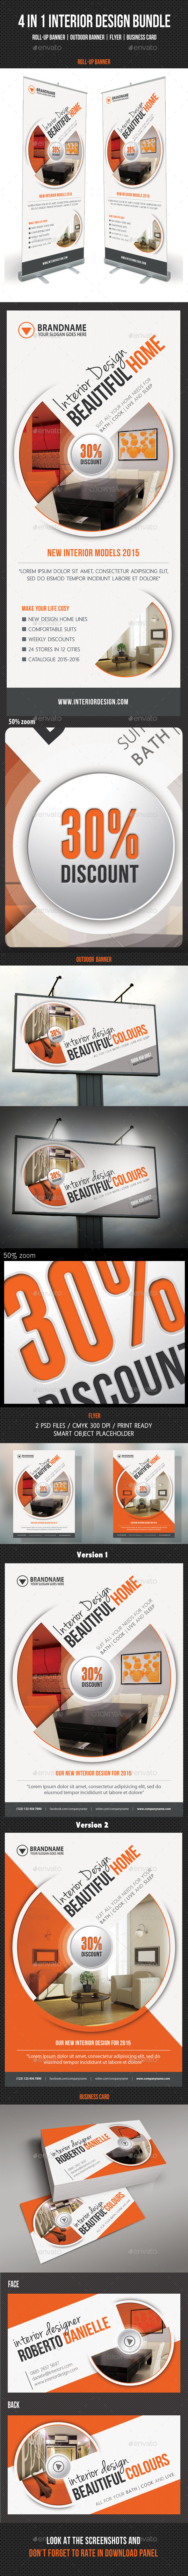 4 in 1 Interior Design Banners Flyer Business Card - Signage Print Templates